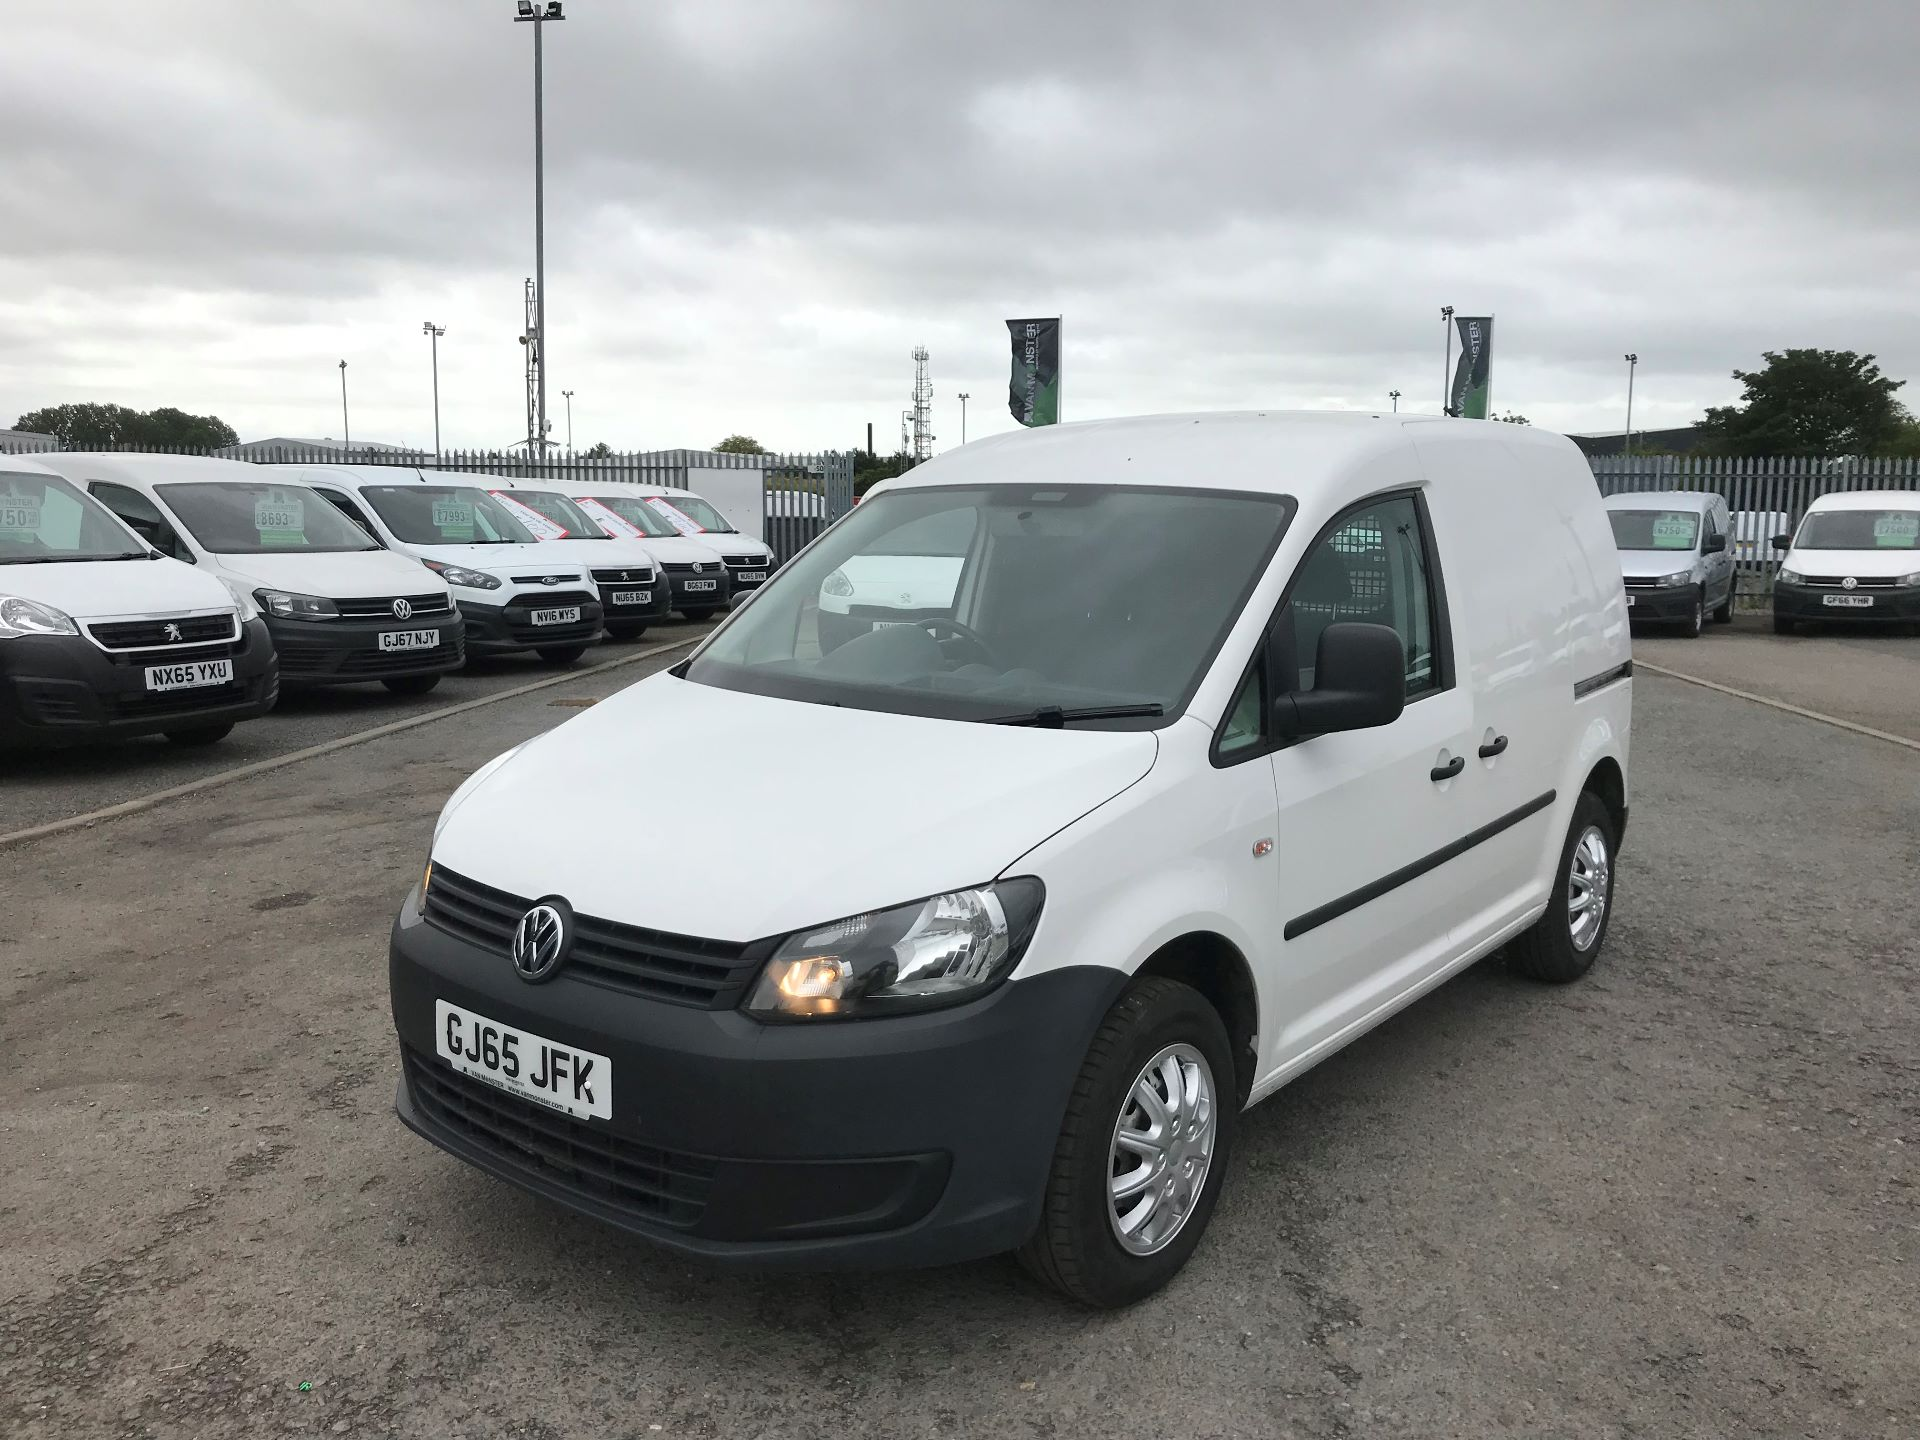 2016 Volkswagen Caddy  1.6 102PS STARTLINE EURO 5 (GJ65JFK) Thumbnail 8